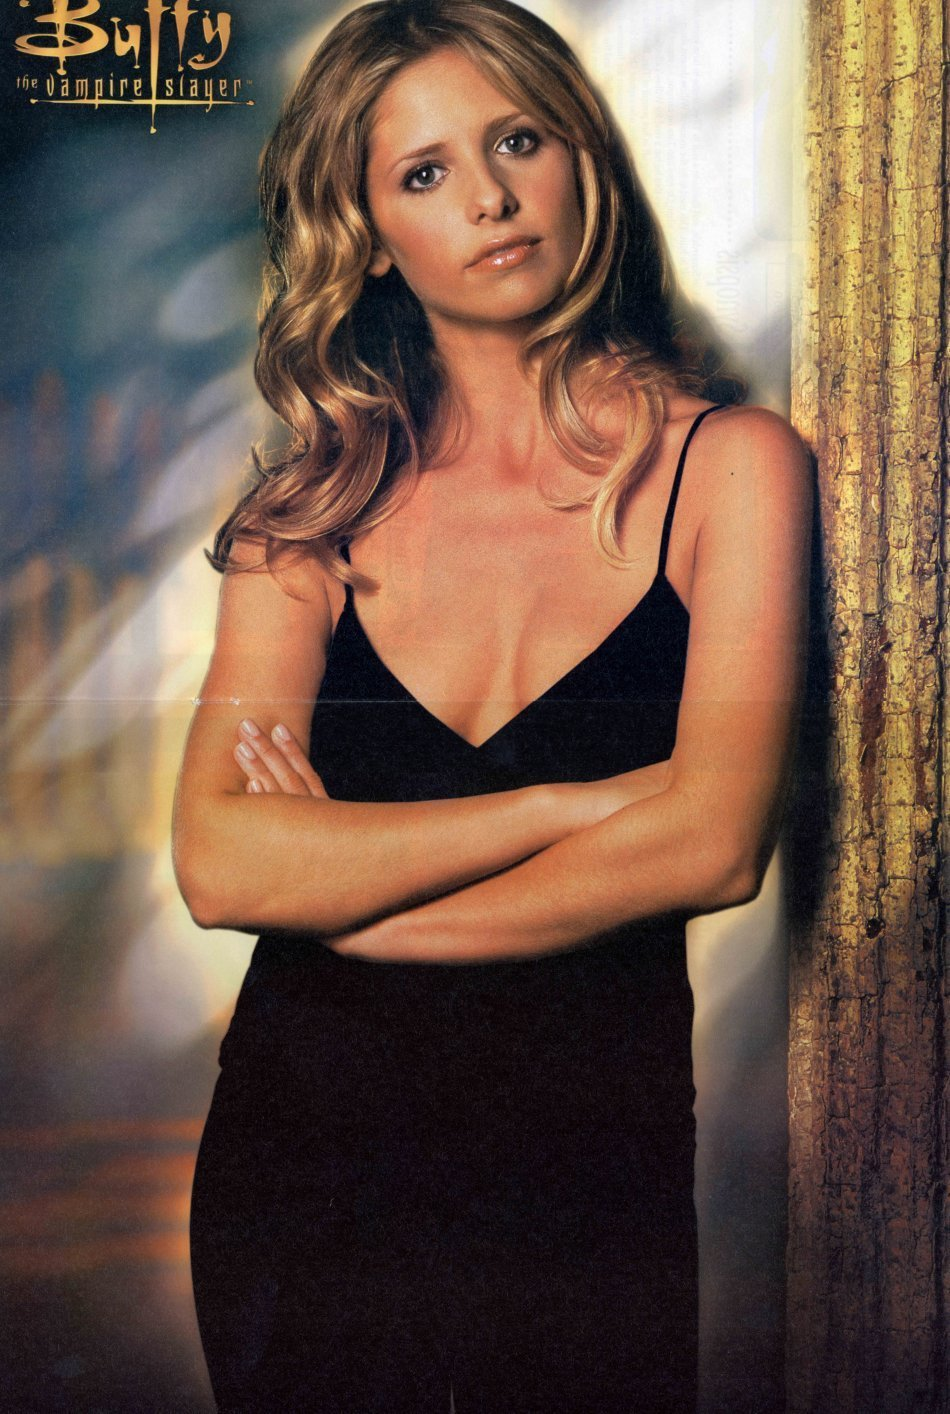 Buffy (season 4)